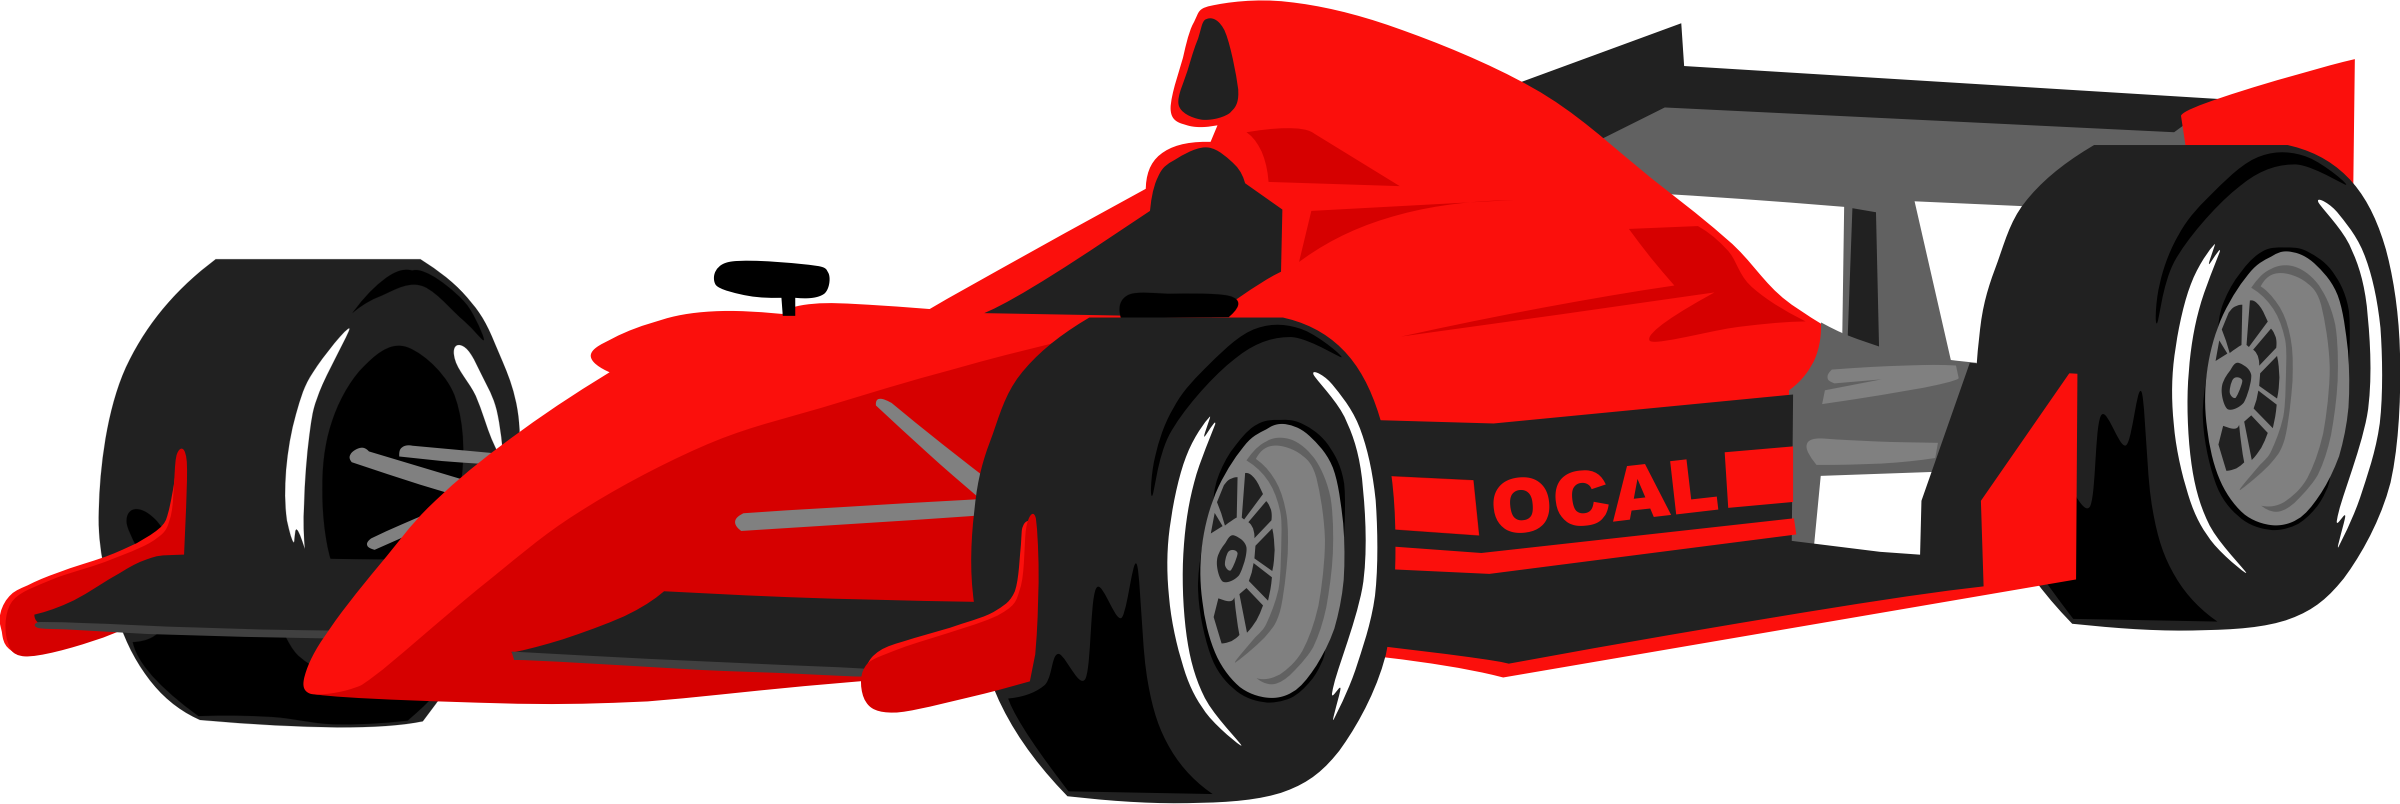 Indy race car clipart banner download Animated Race Cars | Free download best Animated Race Cars on ... banner download